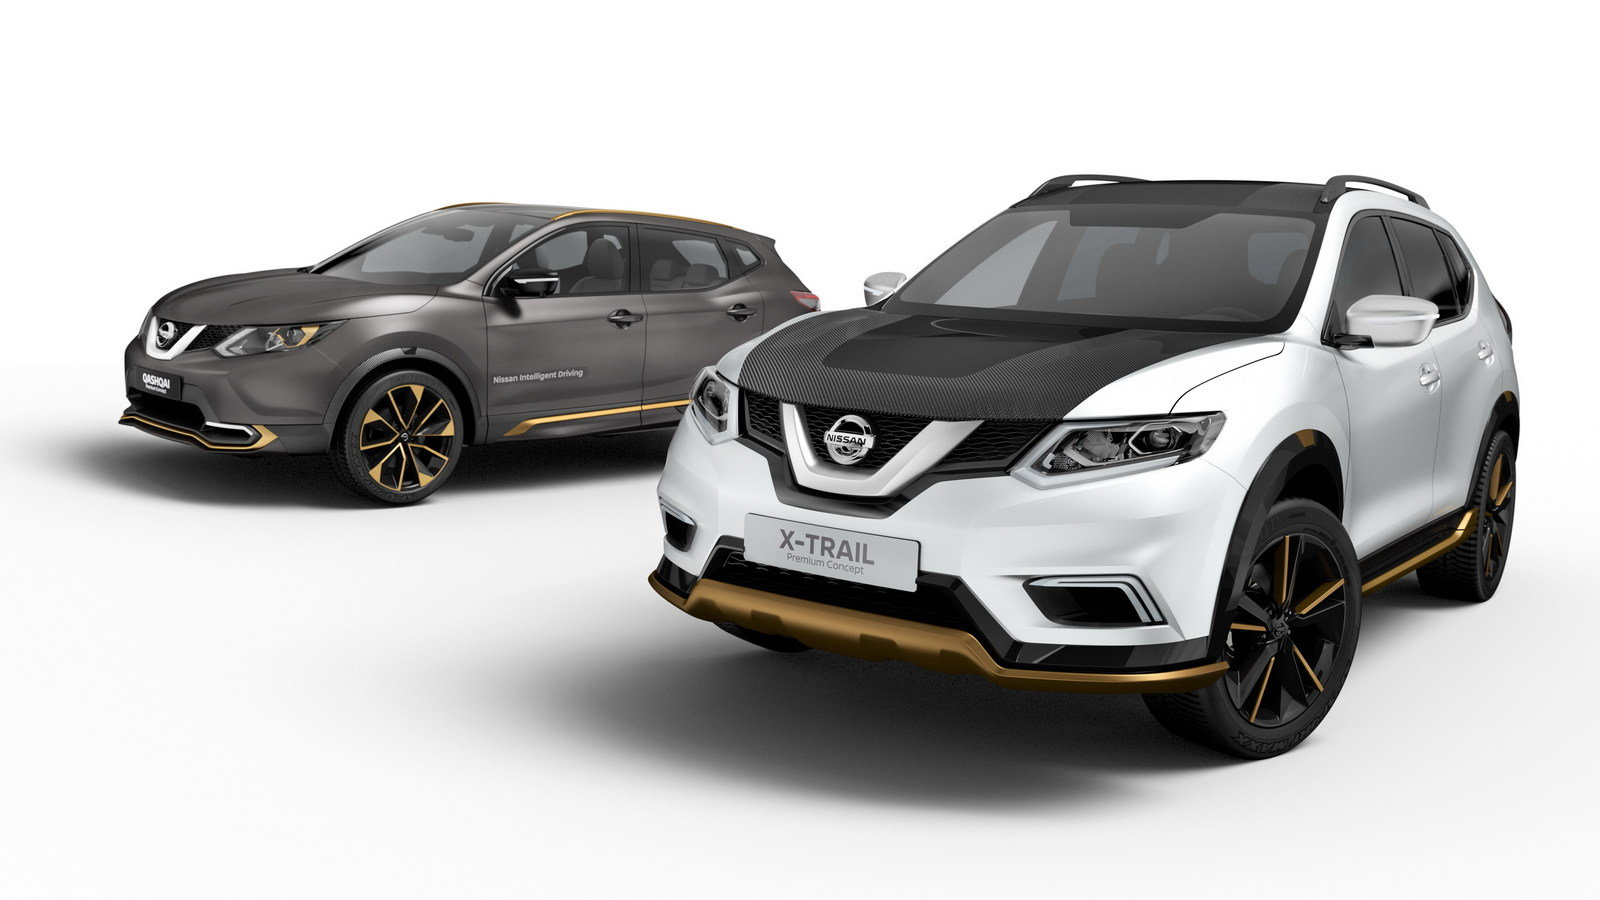 2016 nissan qashqai premium concept picture 667135 car review top speed. Black Bedroom Furniture Sets. Home Design Ideas